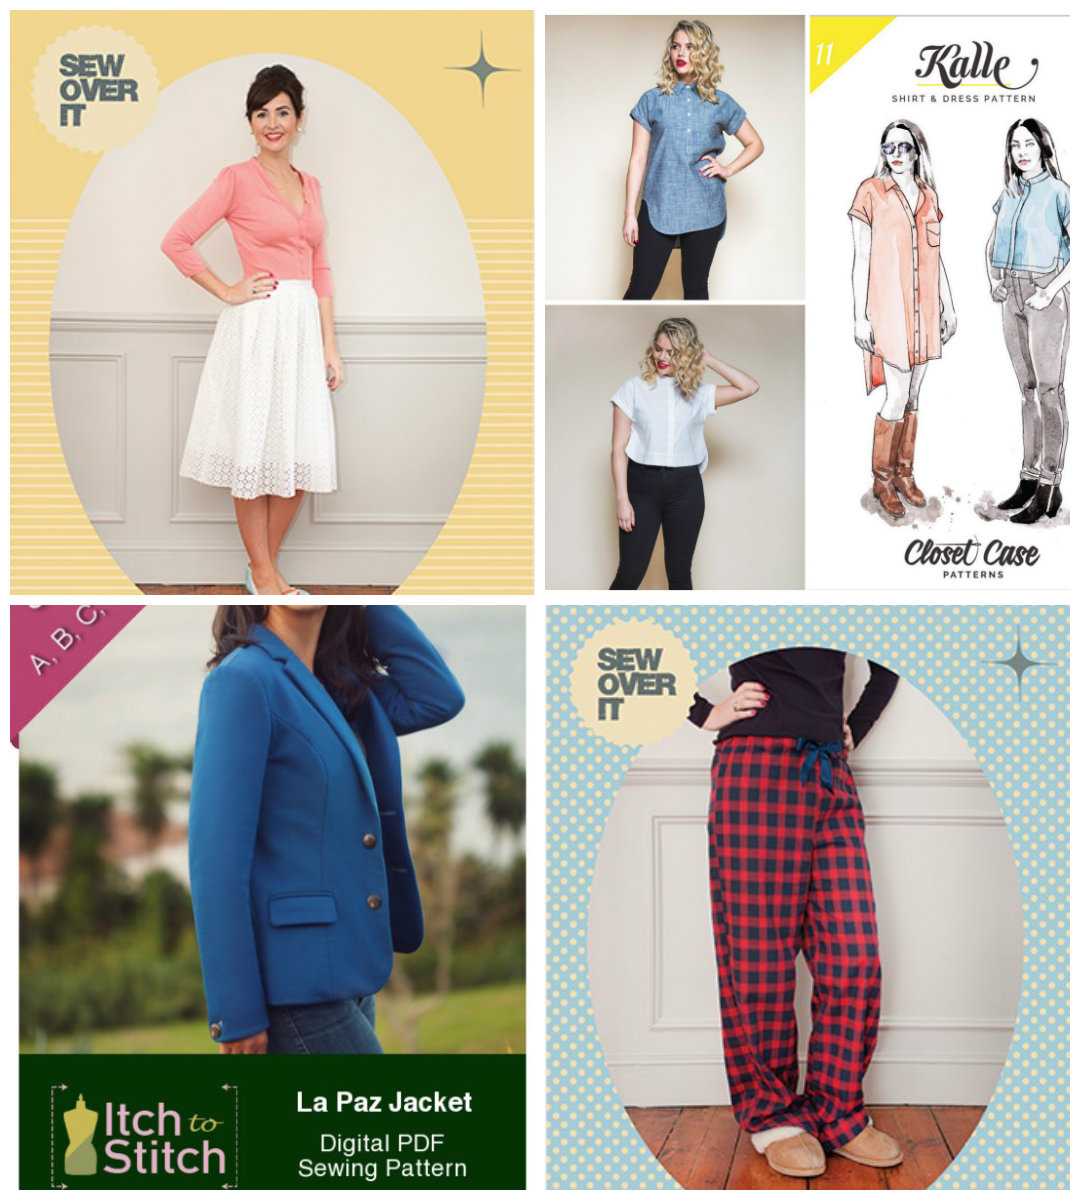 New Indie Patterns - April Edition 4/20/17 - PatternReview.com Blog